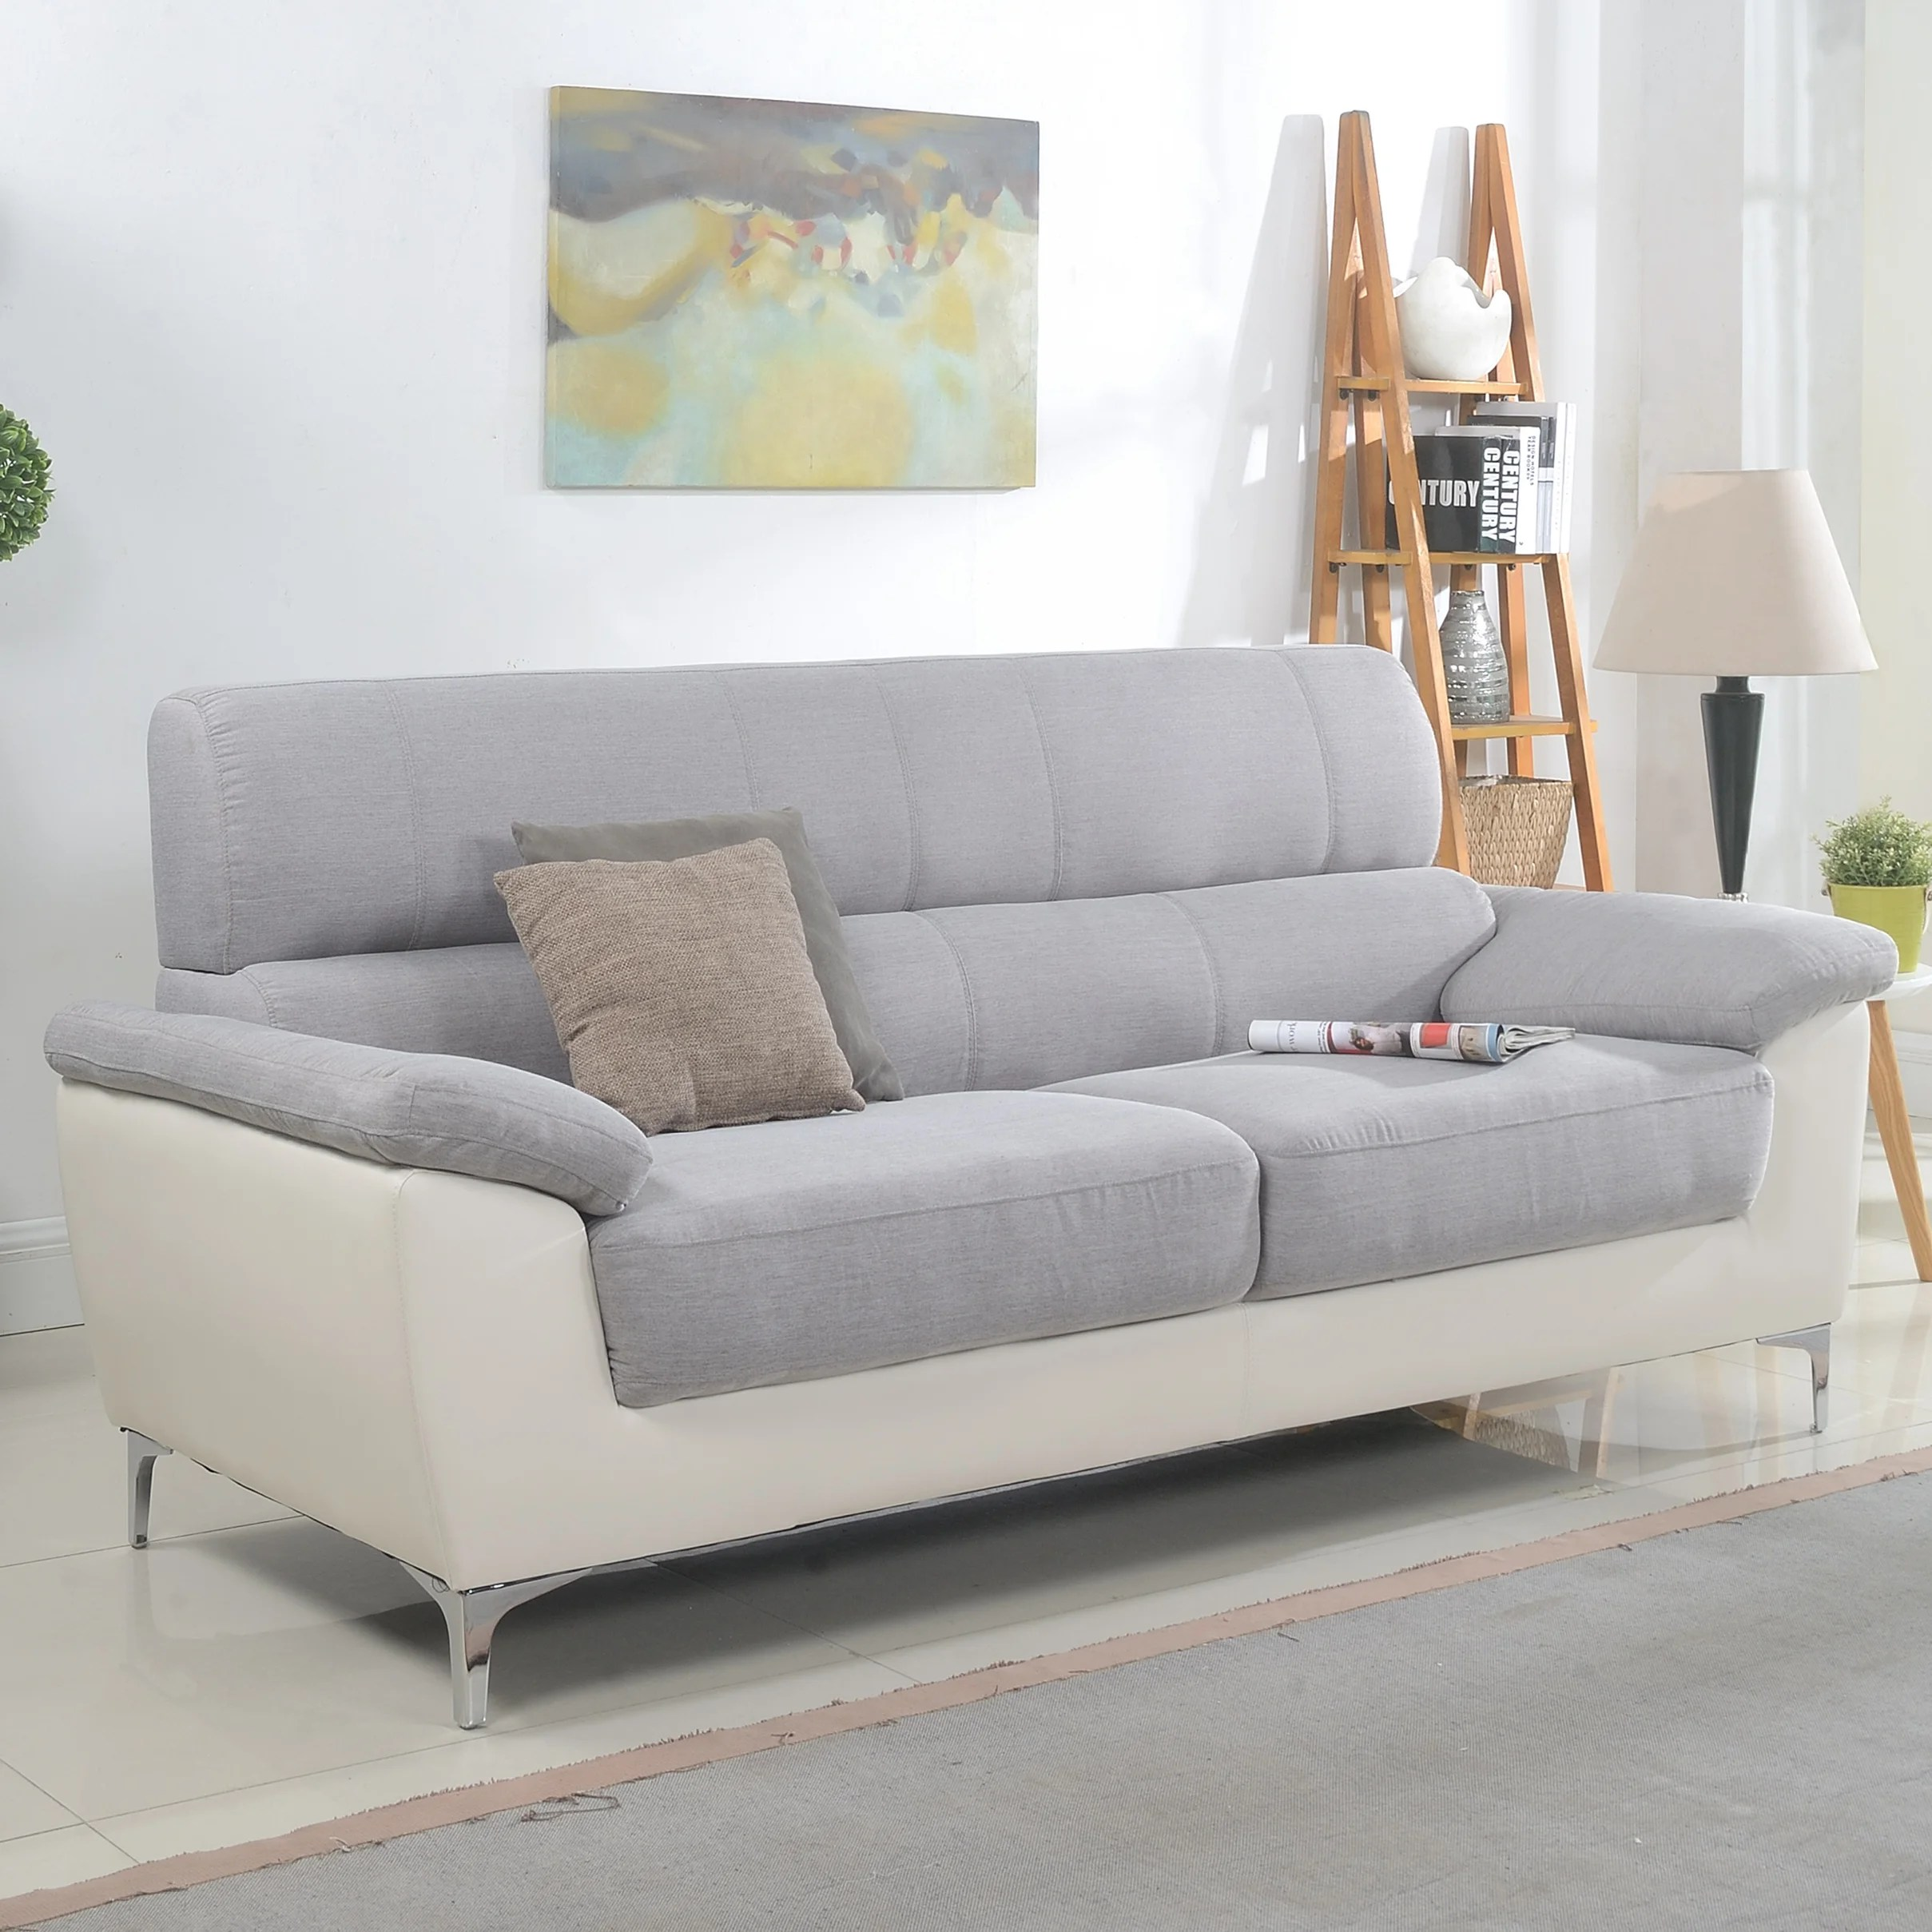 living room furniture leather and upholstery of america collections madison home usa modern two tone fabric bonded sofa reviews wayfair ca